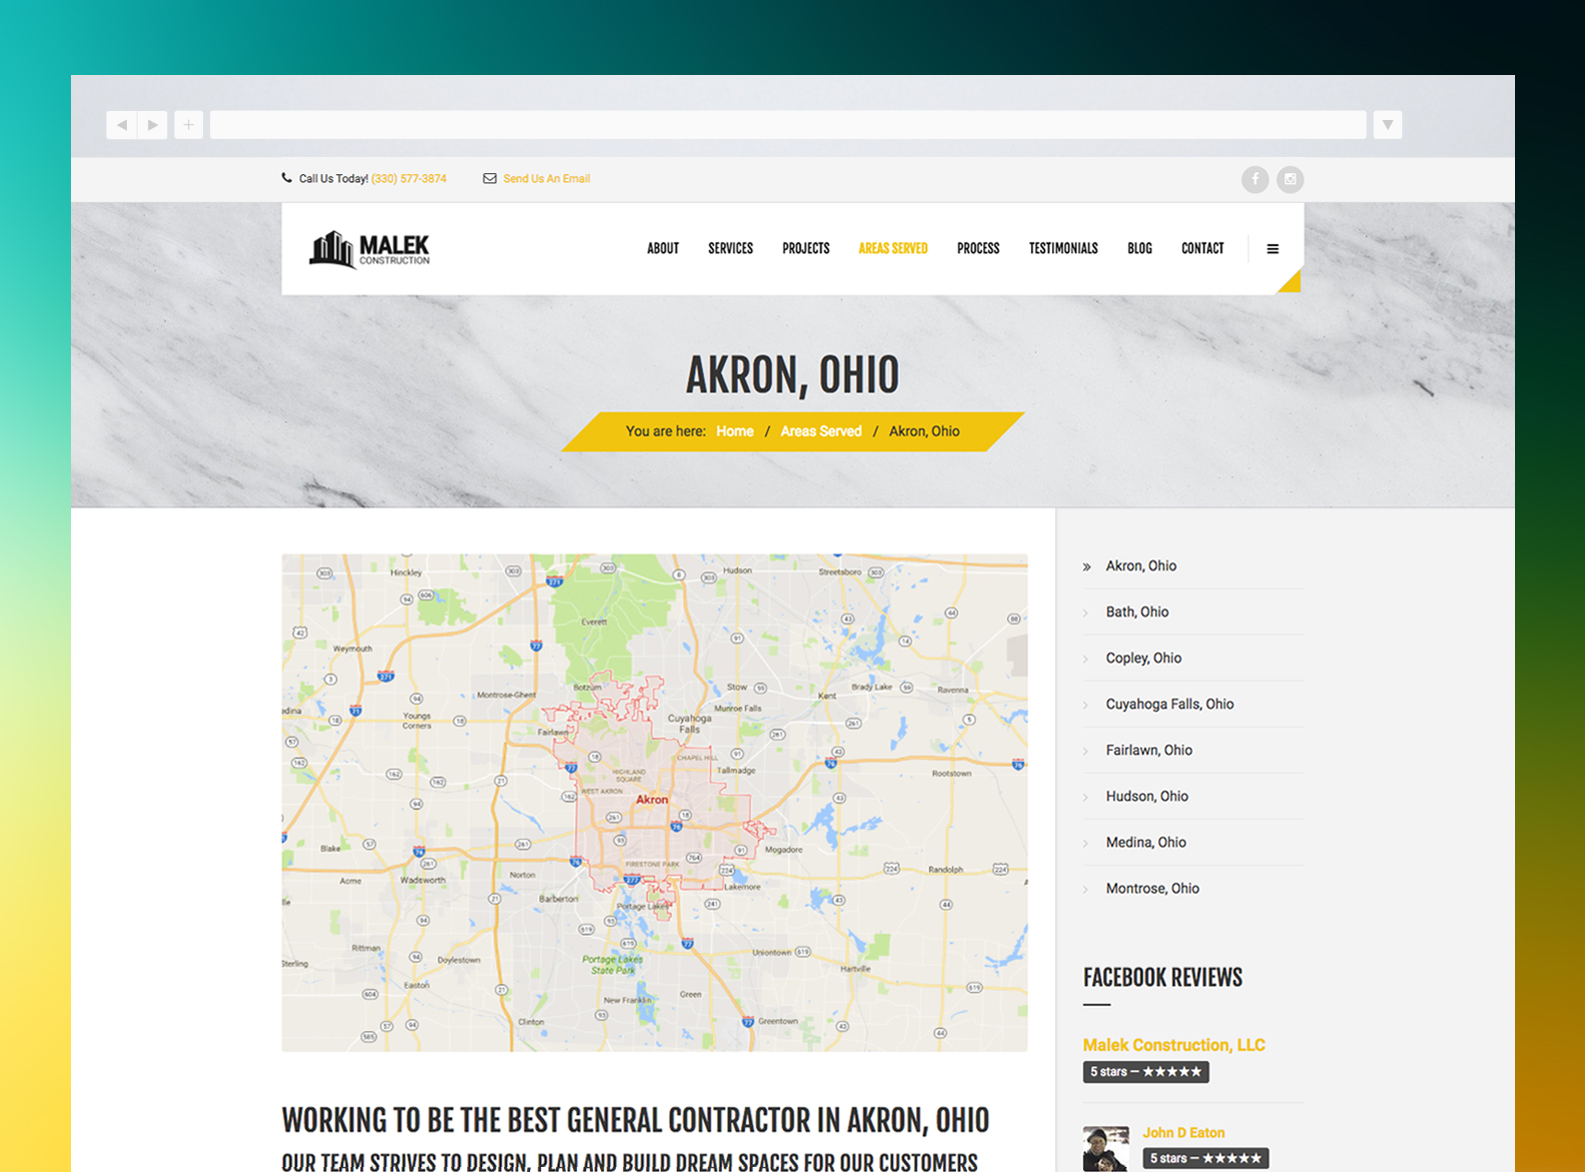 Malek Construction Website Areas Served